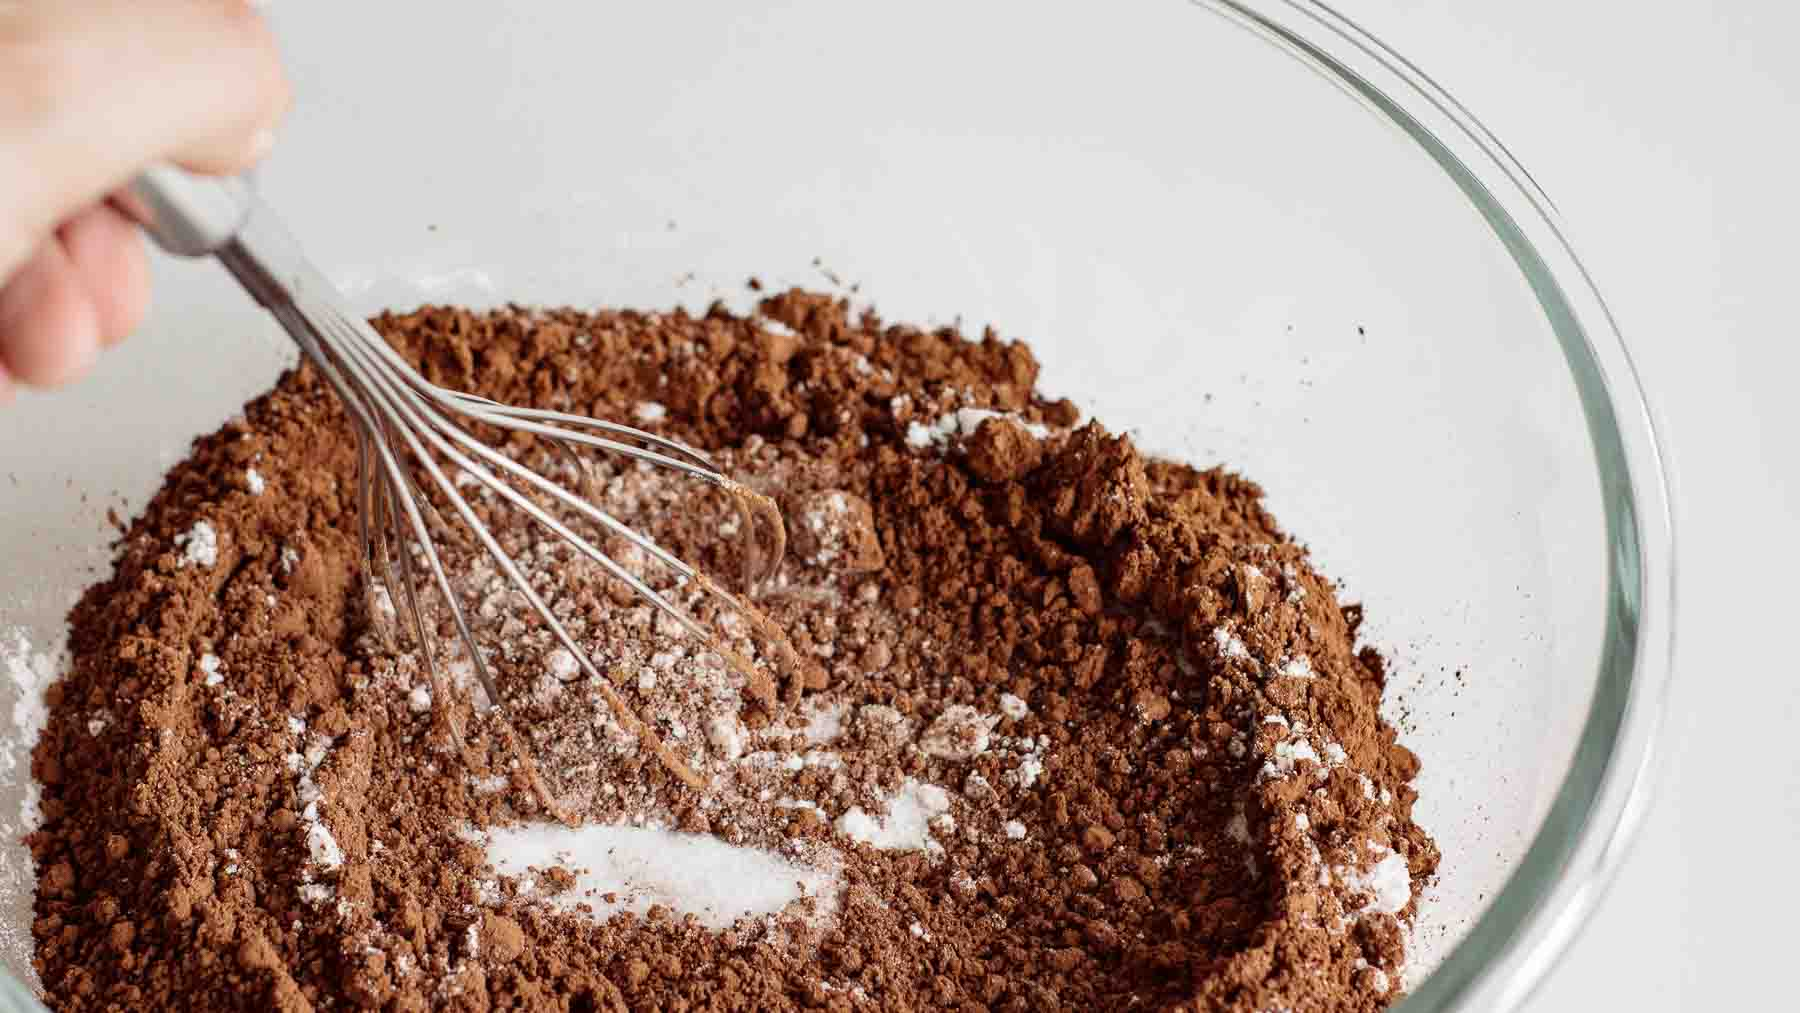 Whisking dry ingredients in a large glass bowl.